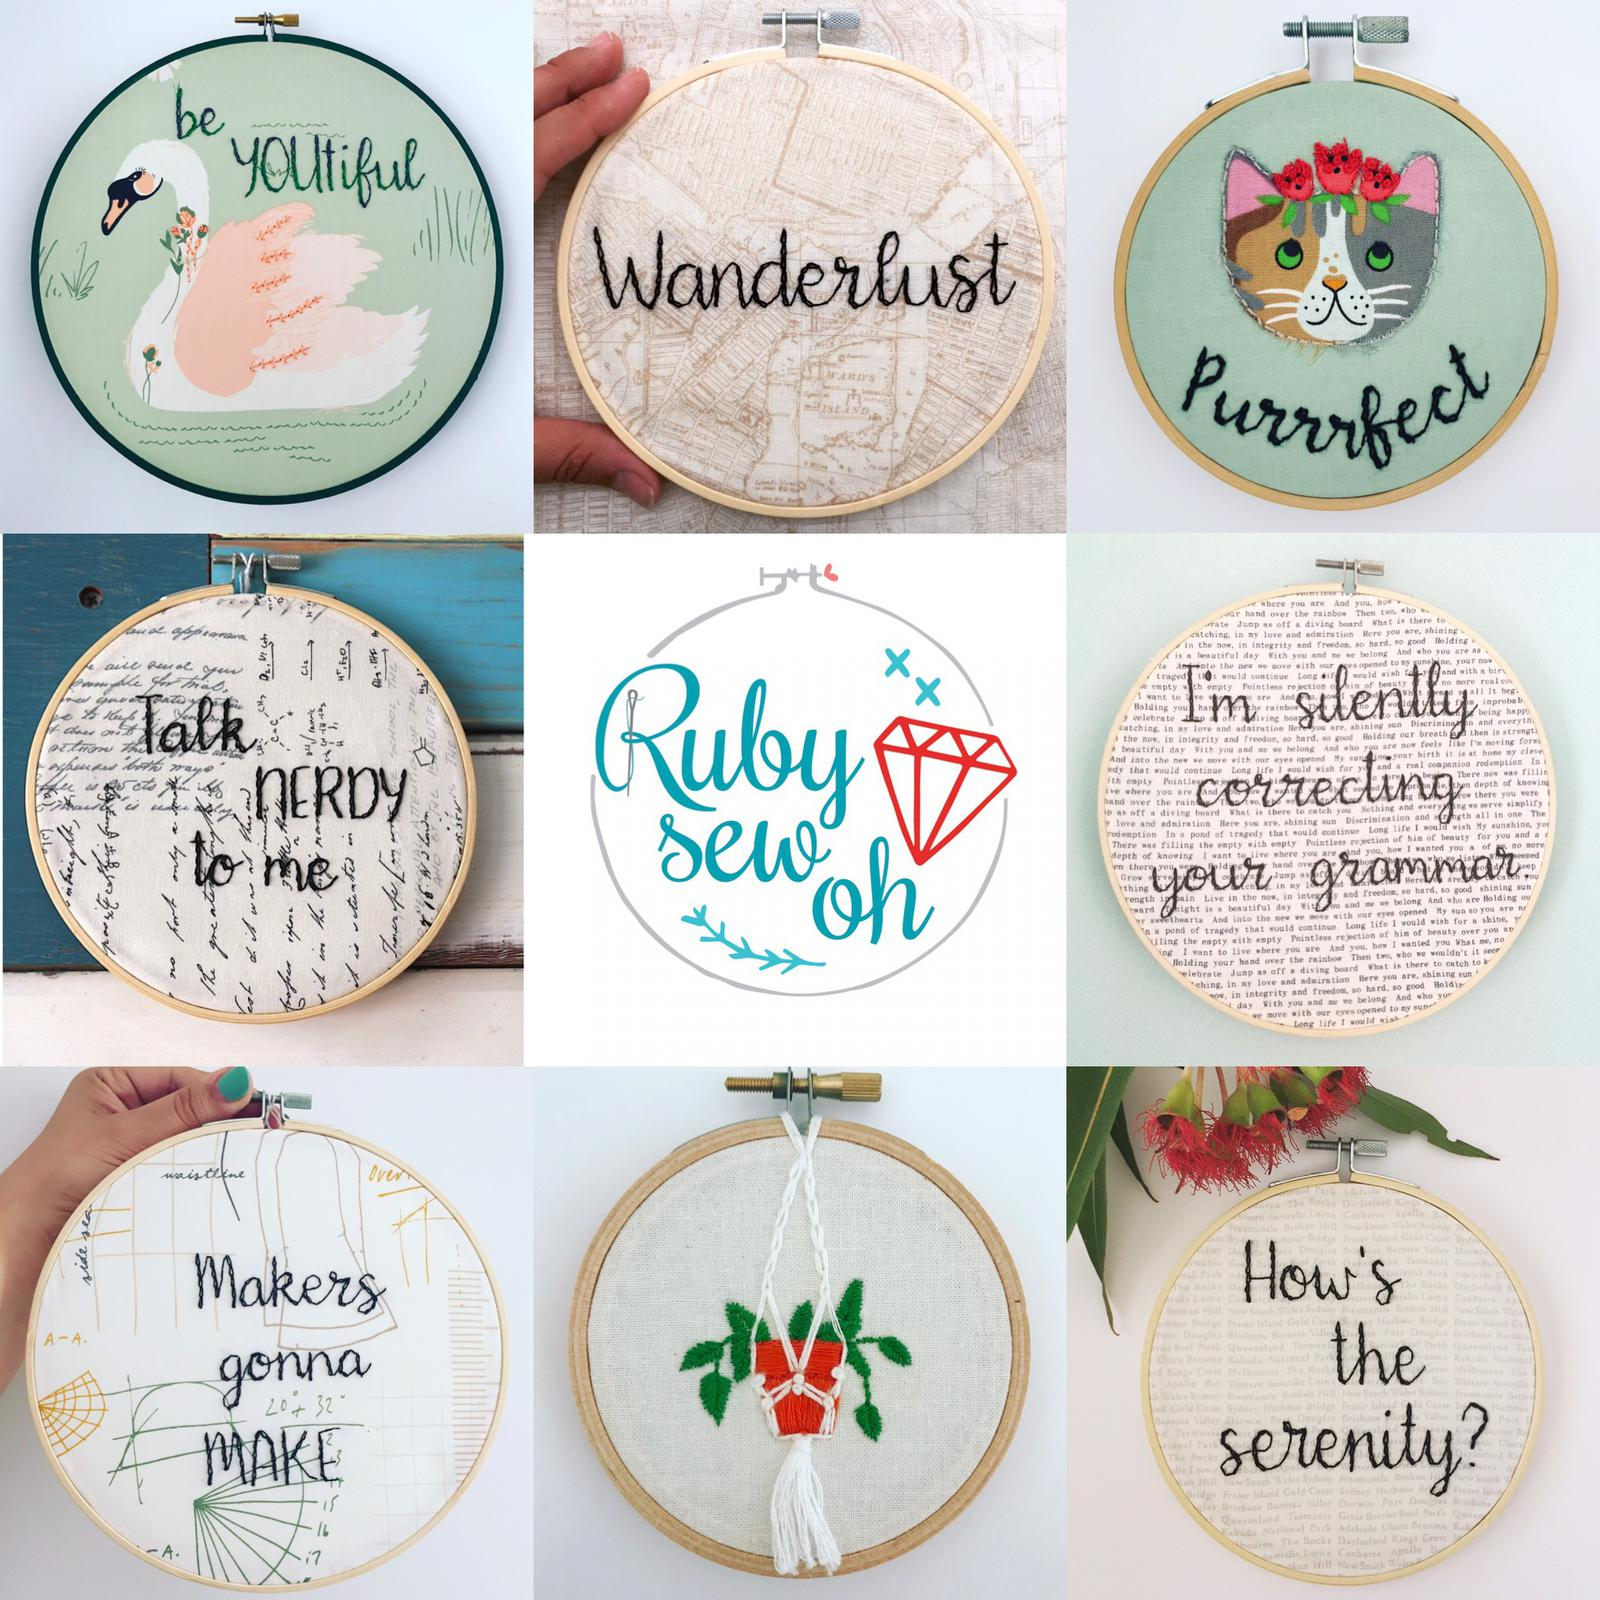 Embroidery hoop art for the home